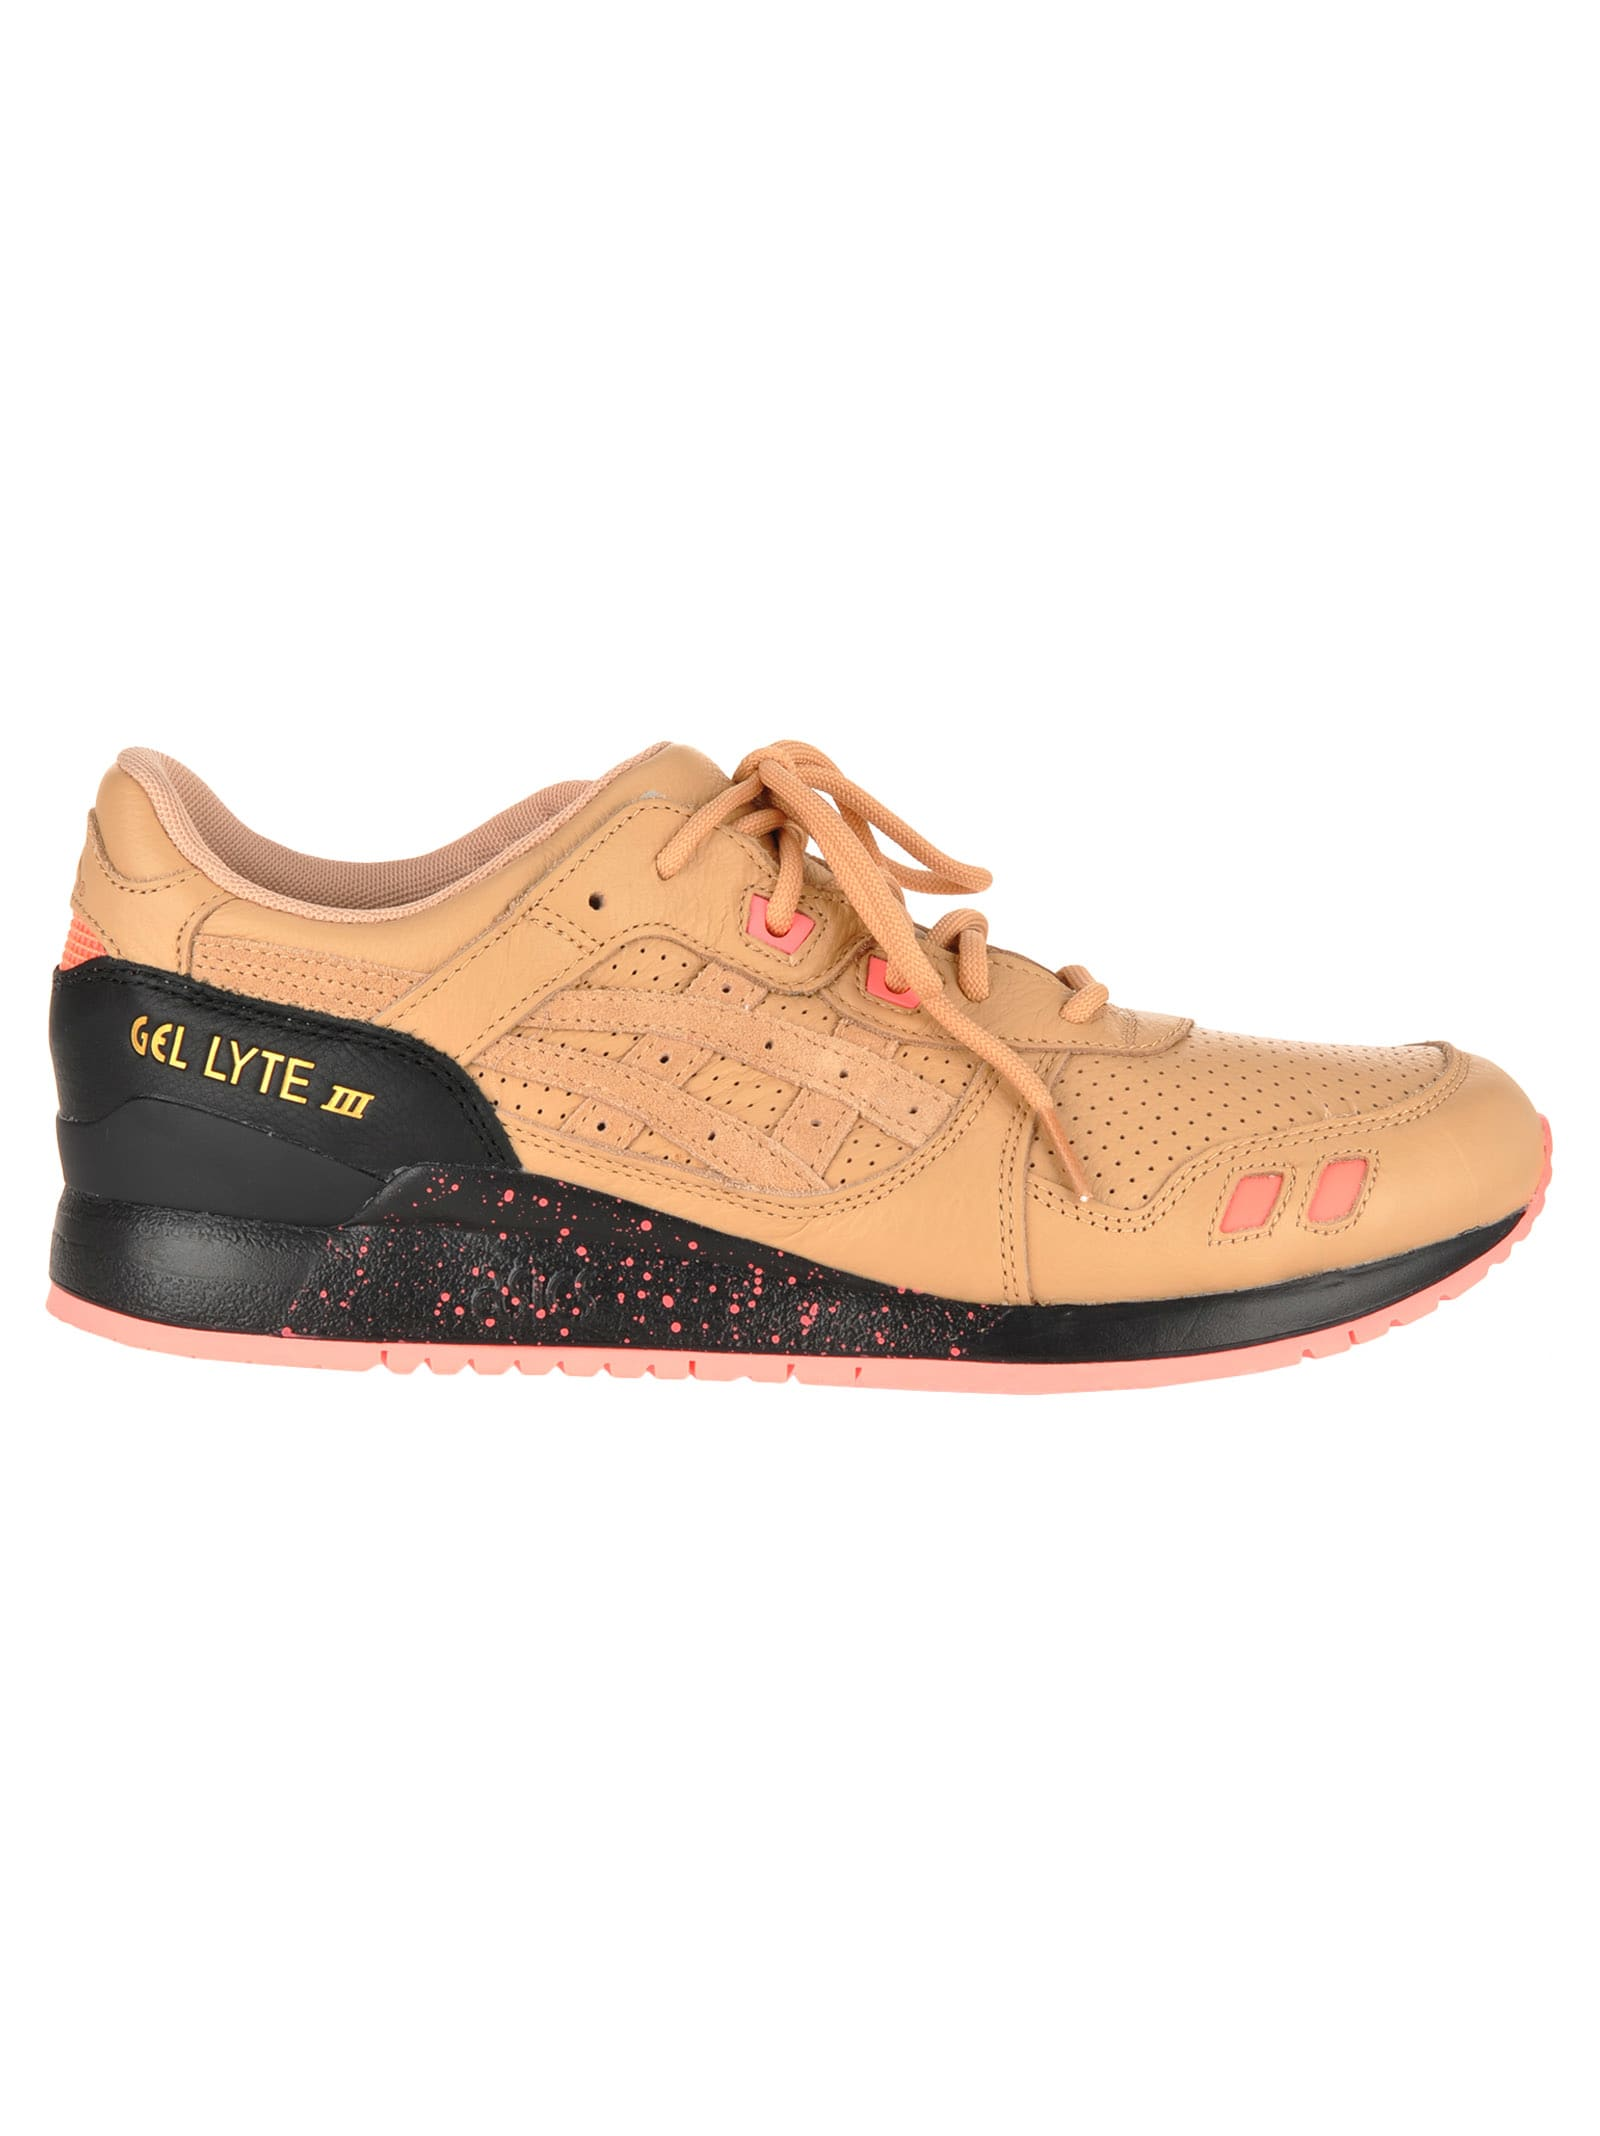 competitive price bd965 333cd Asics Gel Lyte Iii Sneakers